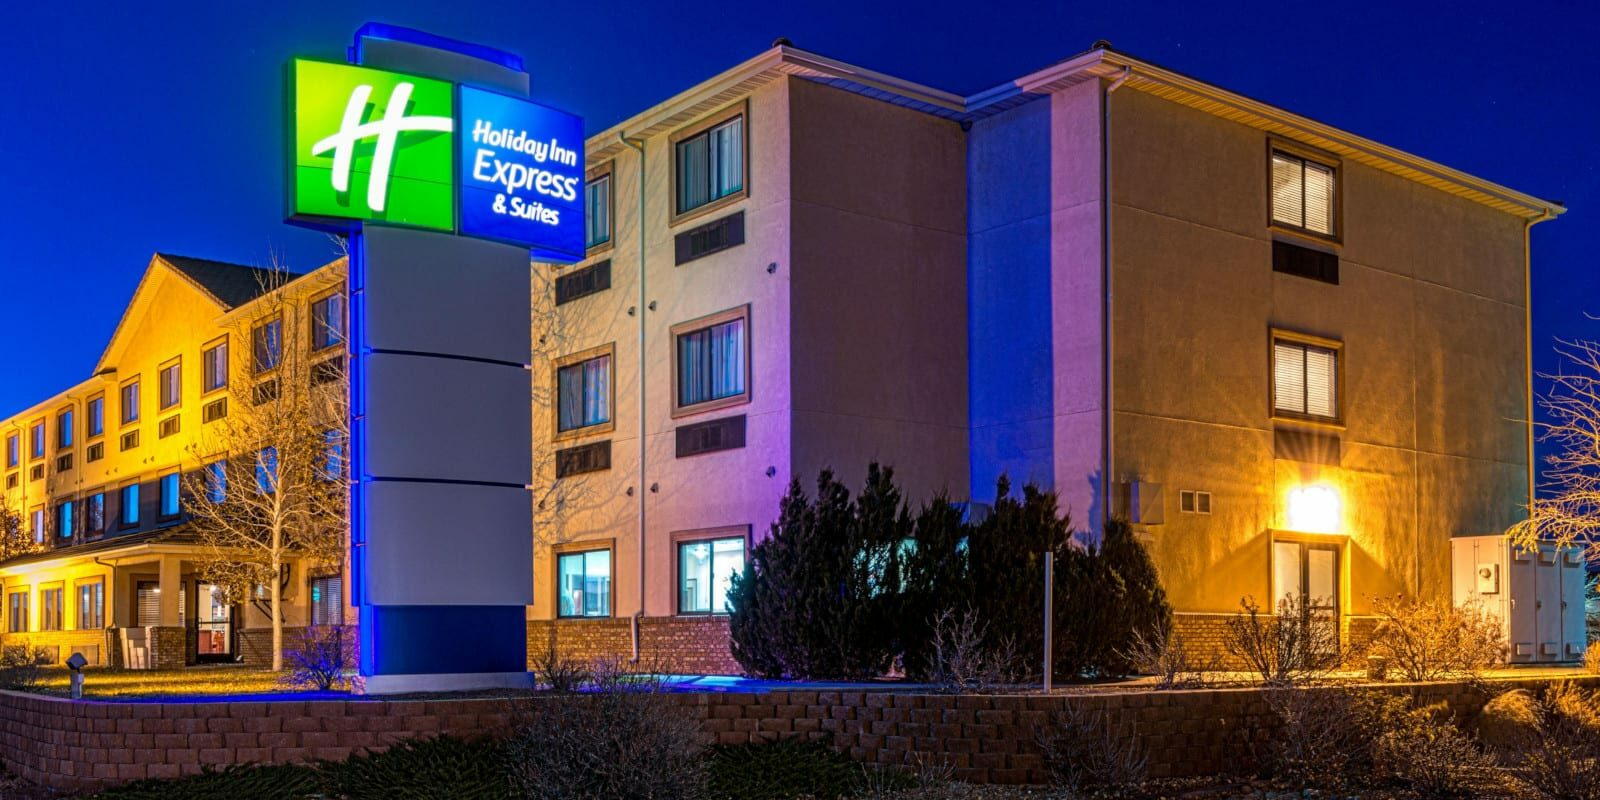 Best Hotels Alamosa CO Holiday Inn Express and Suites Exterior